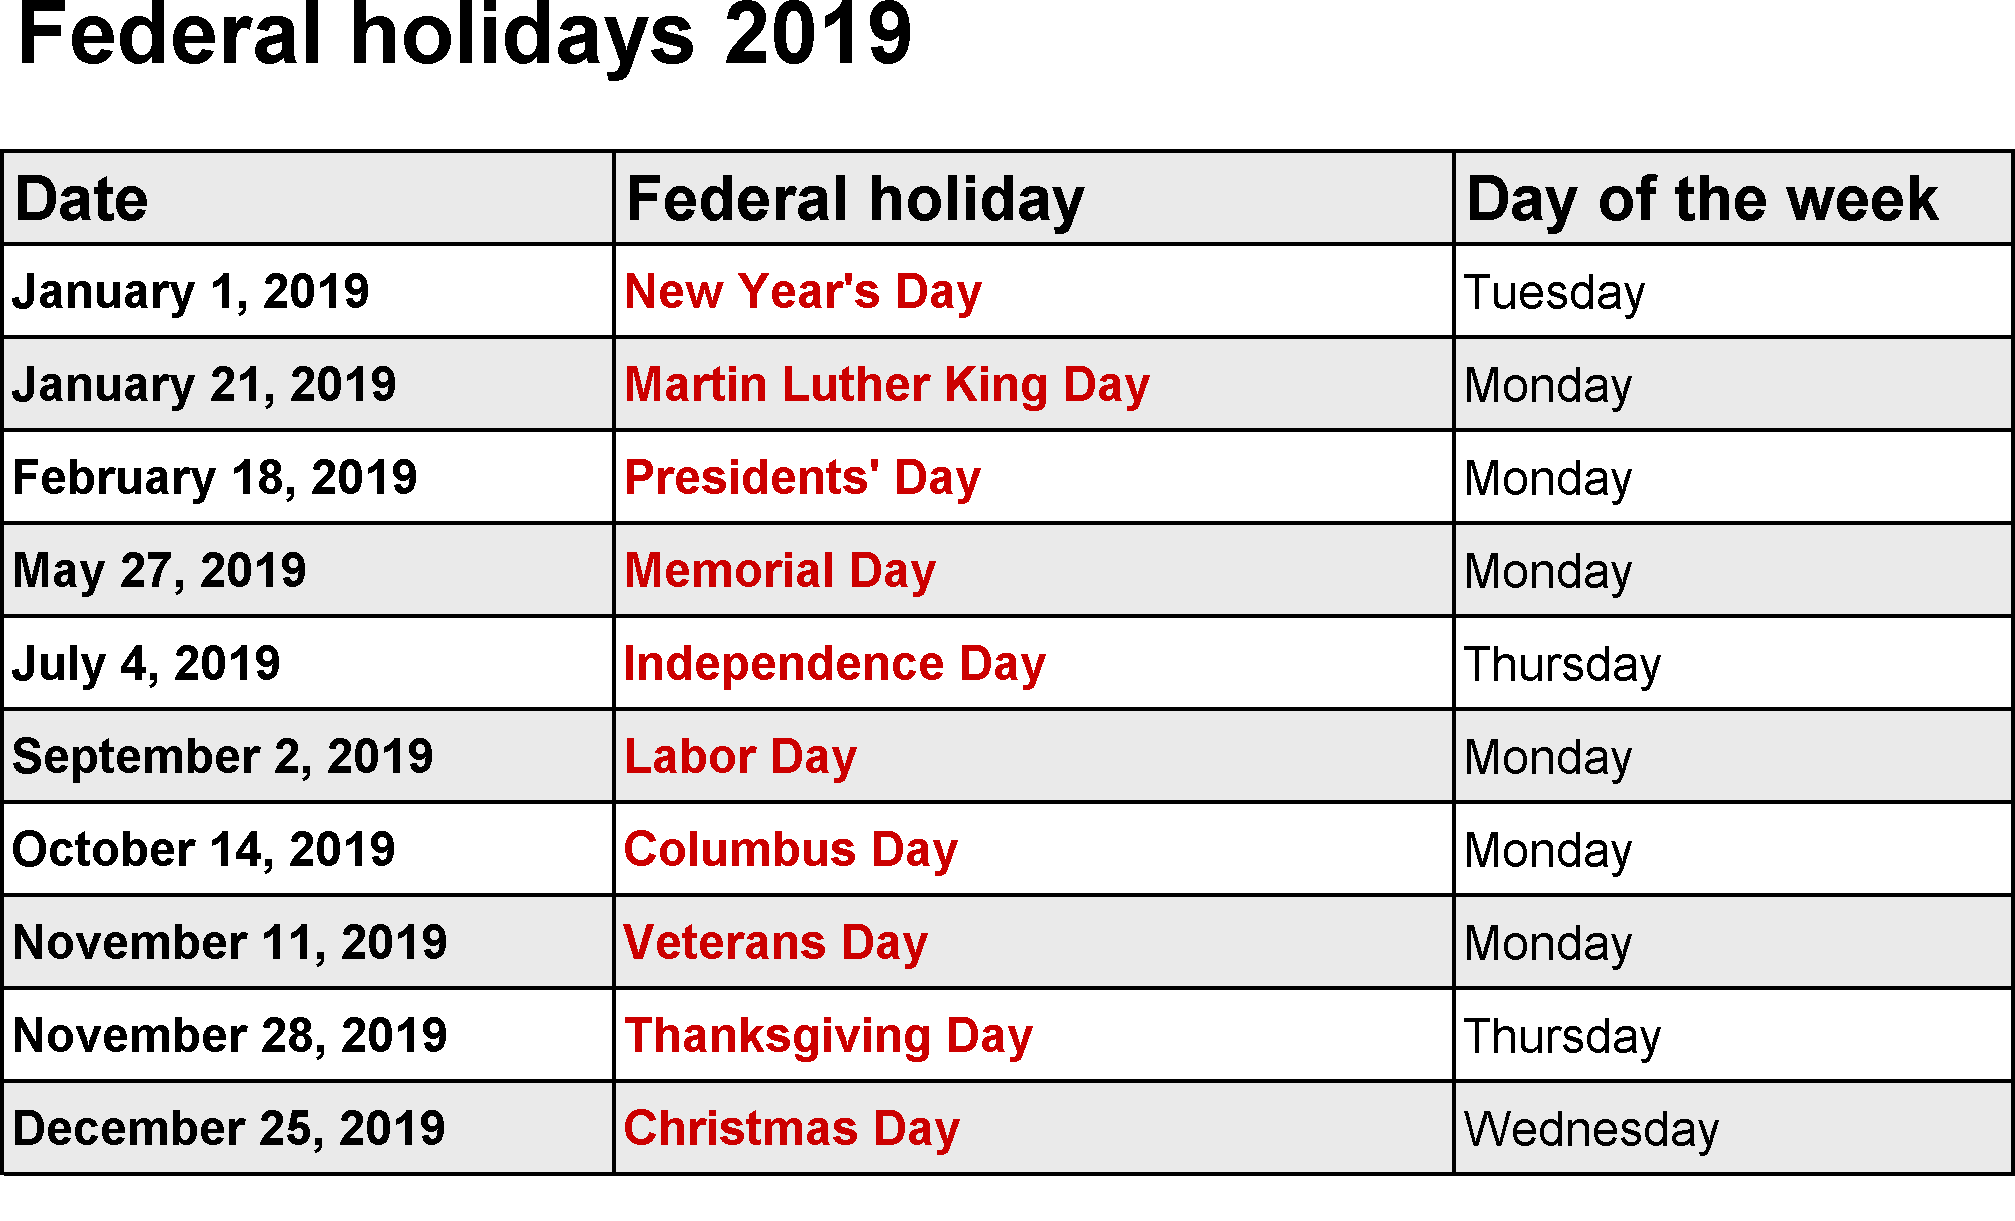 Federal Christmas Holiday 2019 UK Federal Holidays 2019 | UK FEDERAL HOLIDAYS | 2019 CALENDAR UK